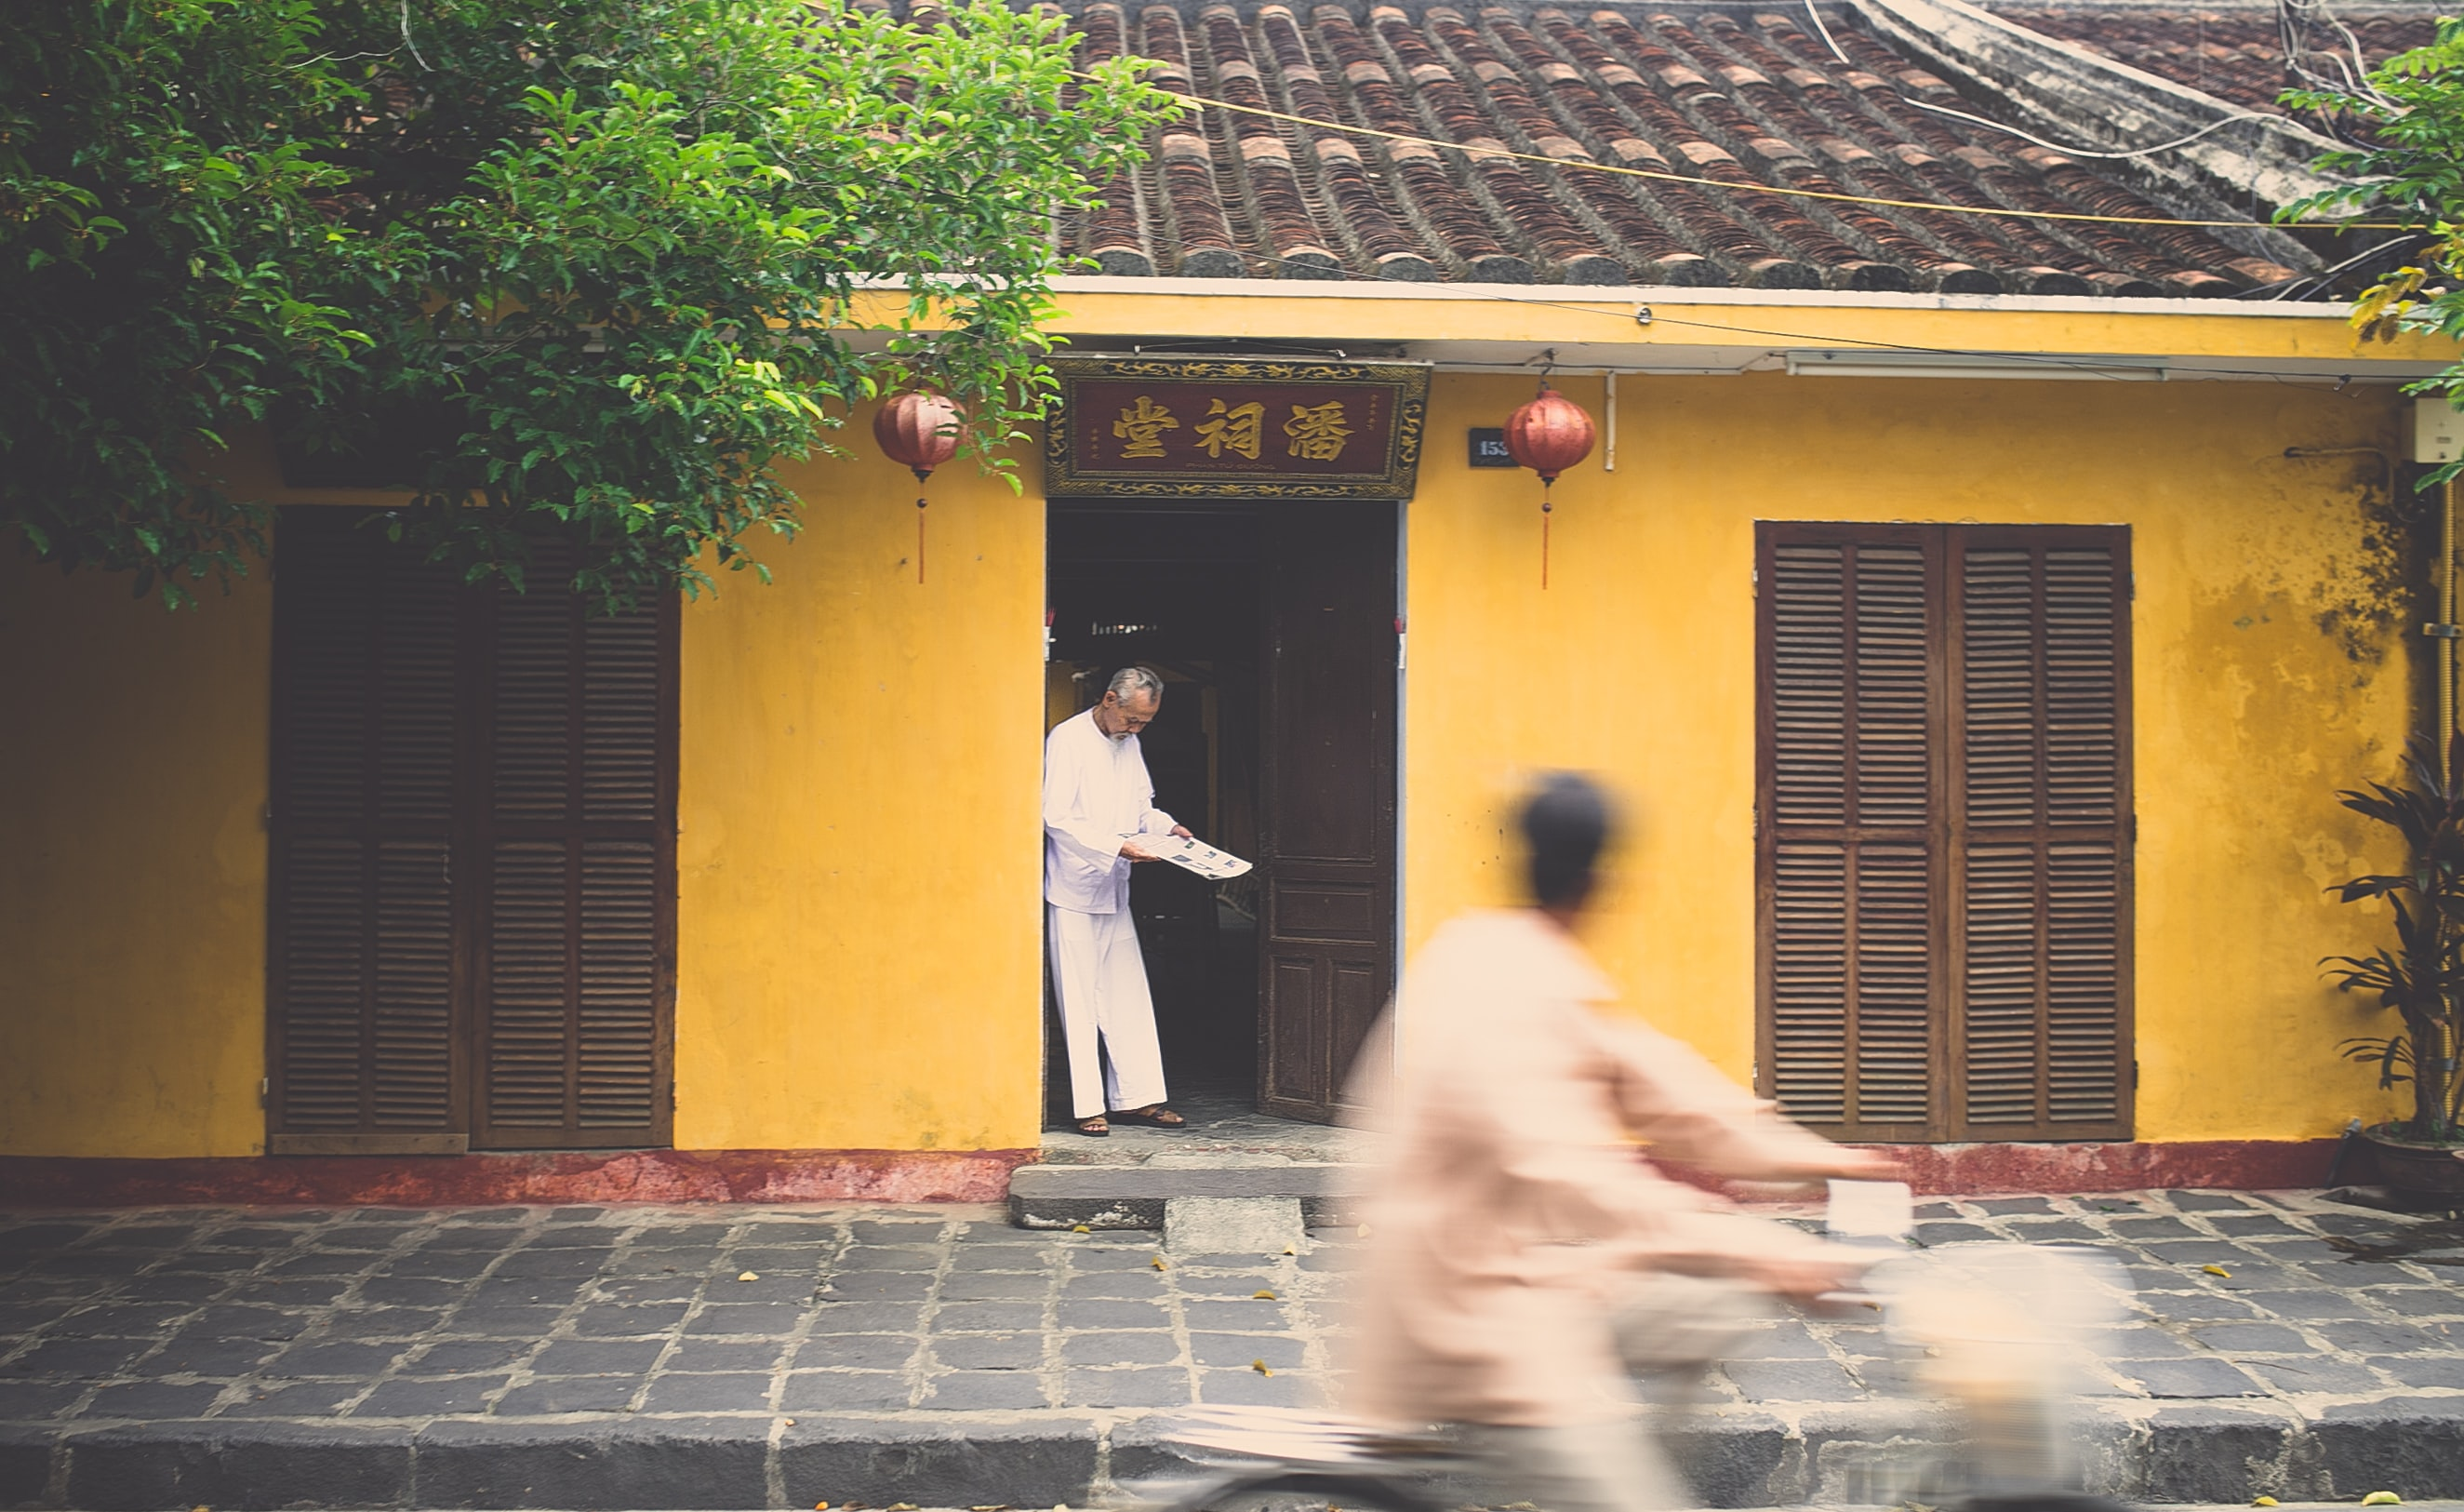 Asian house with a man in the door and another man on a bike driving by